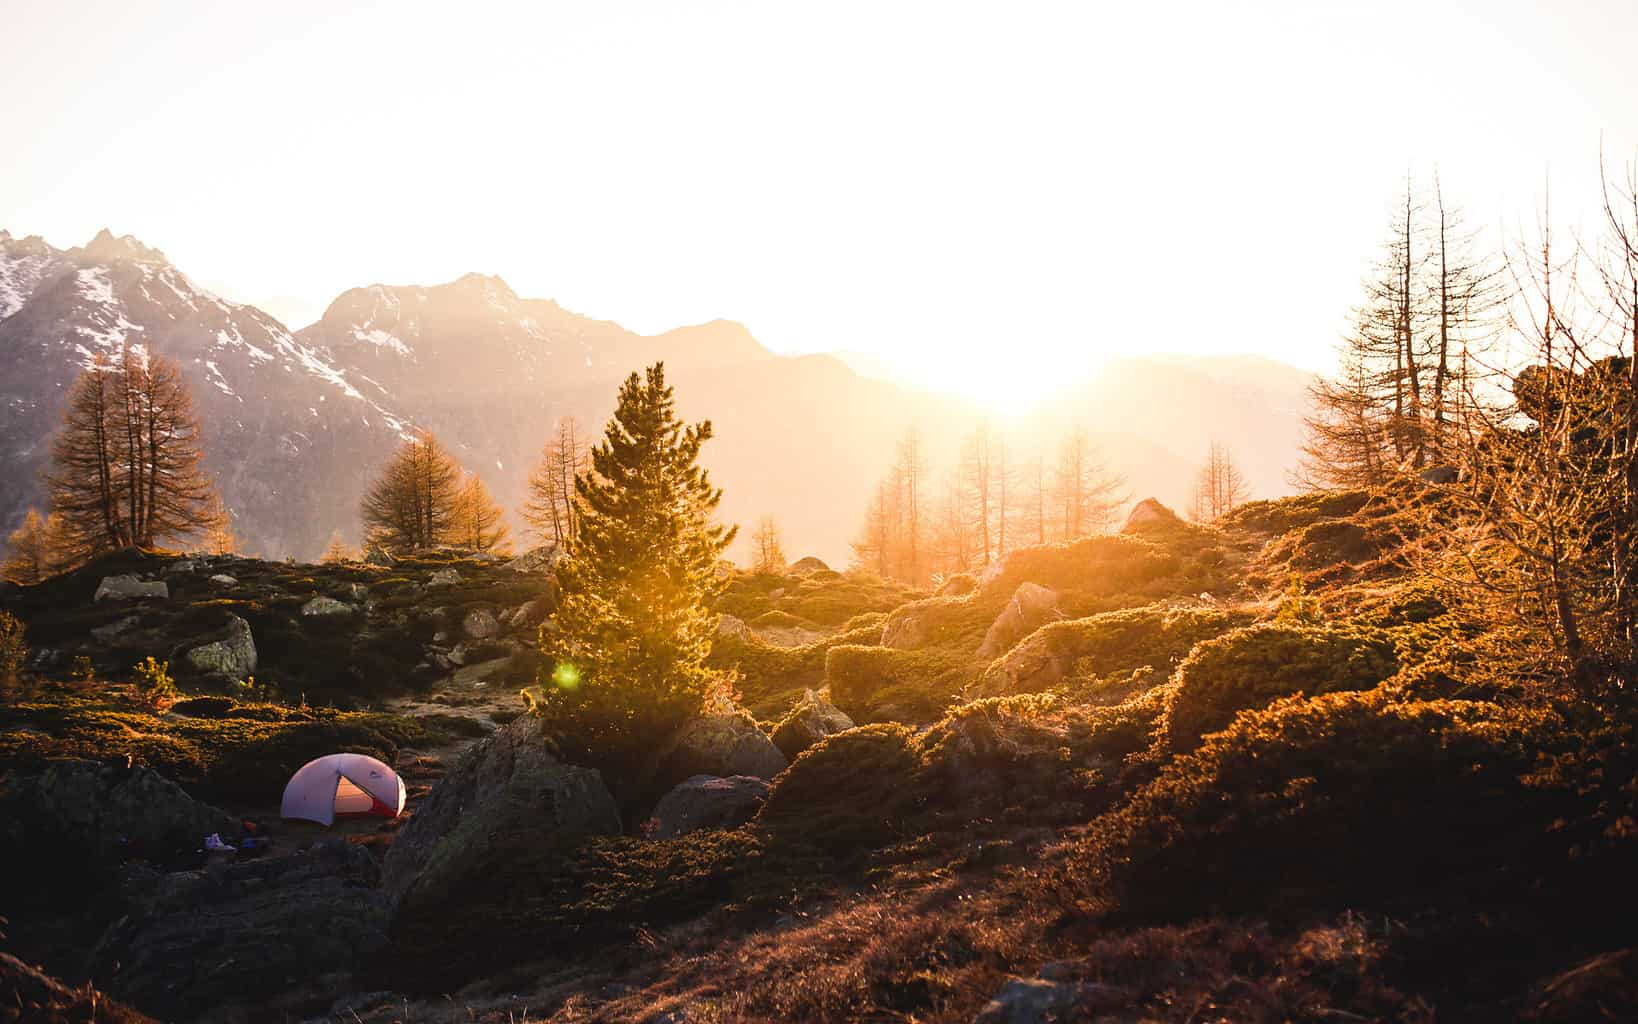 Sun rise in top of a hill with pine trees